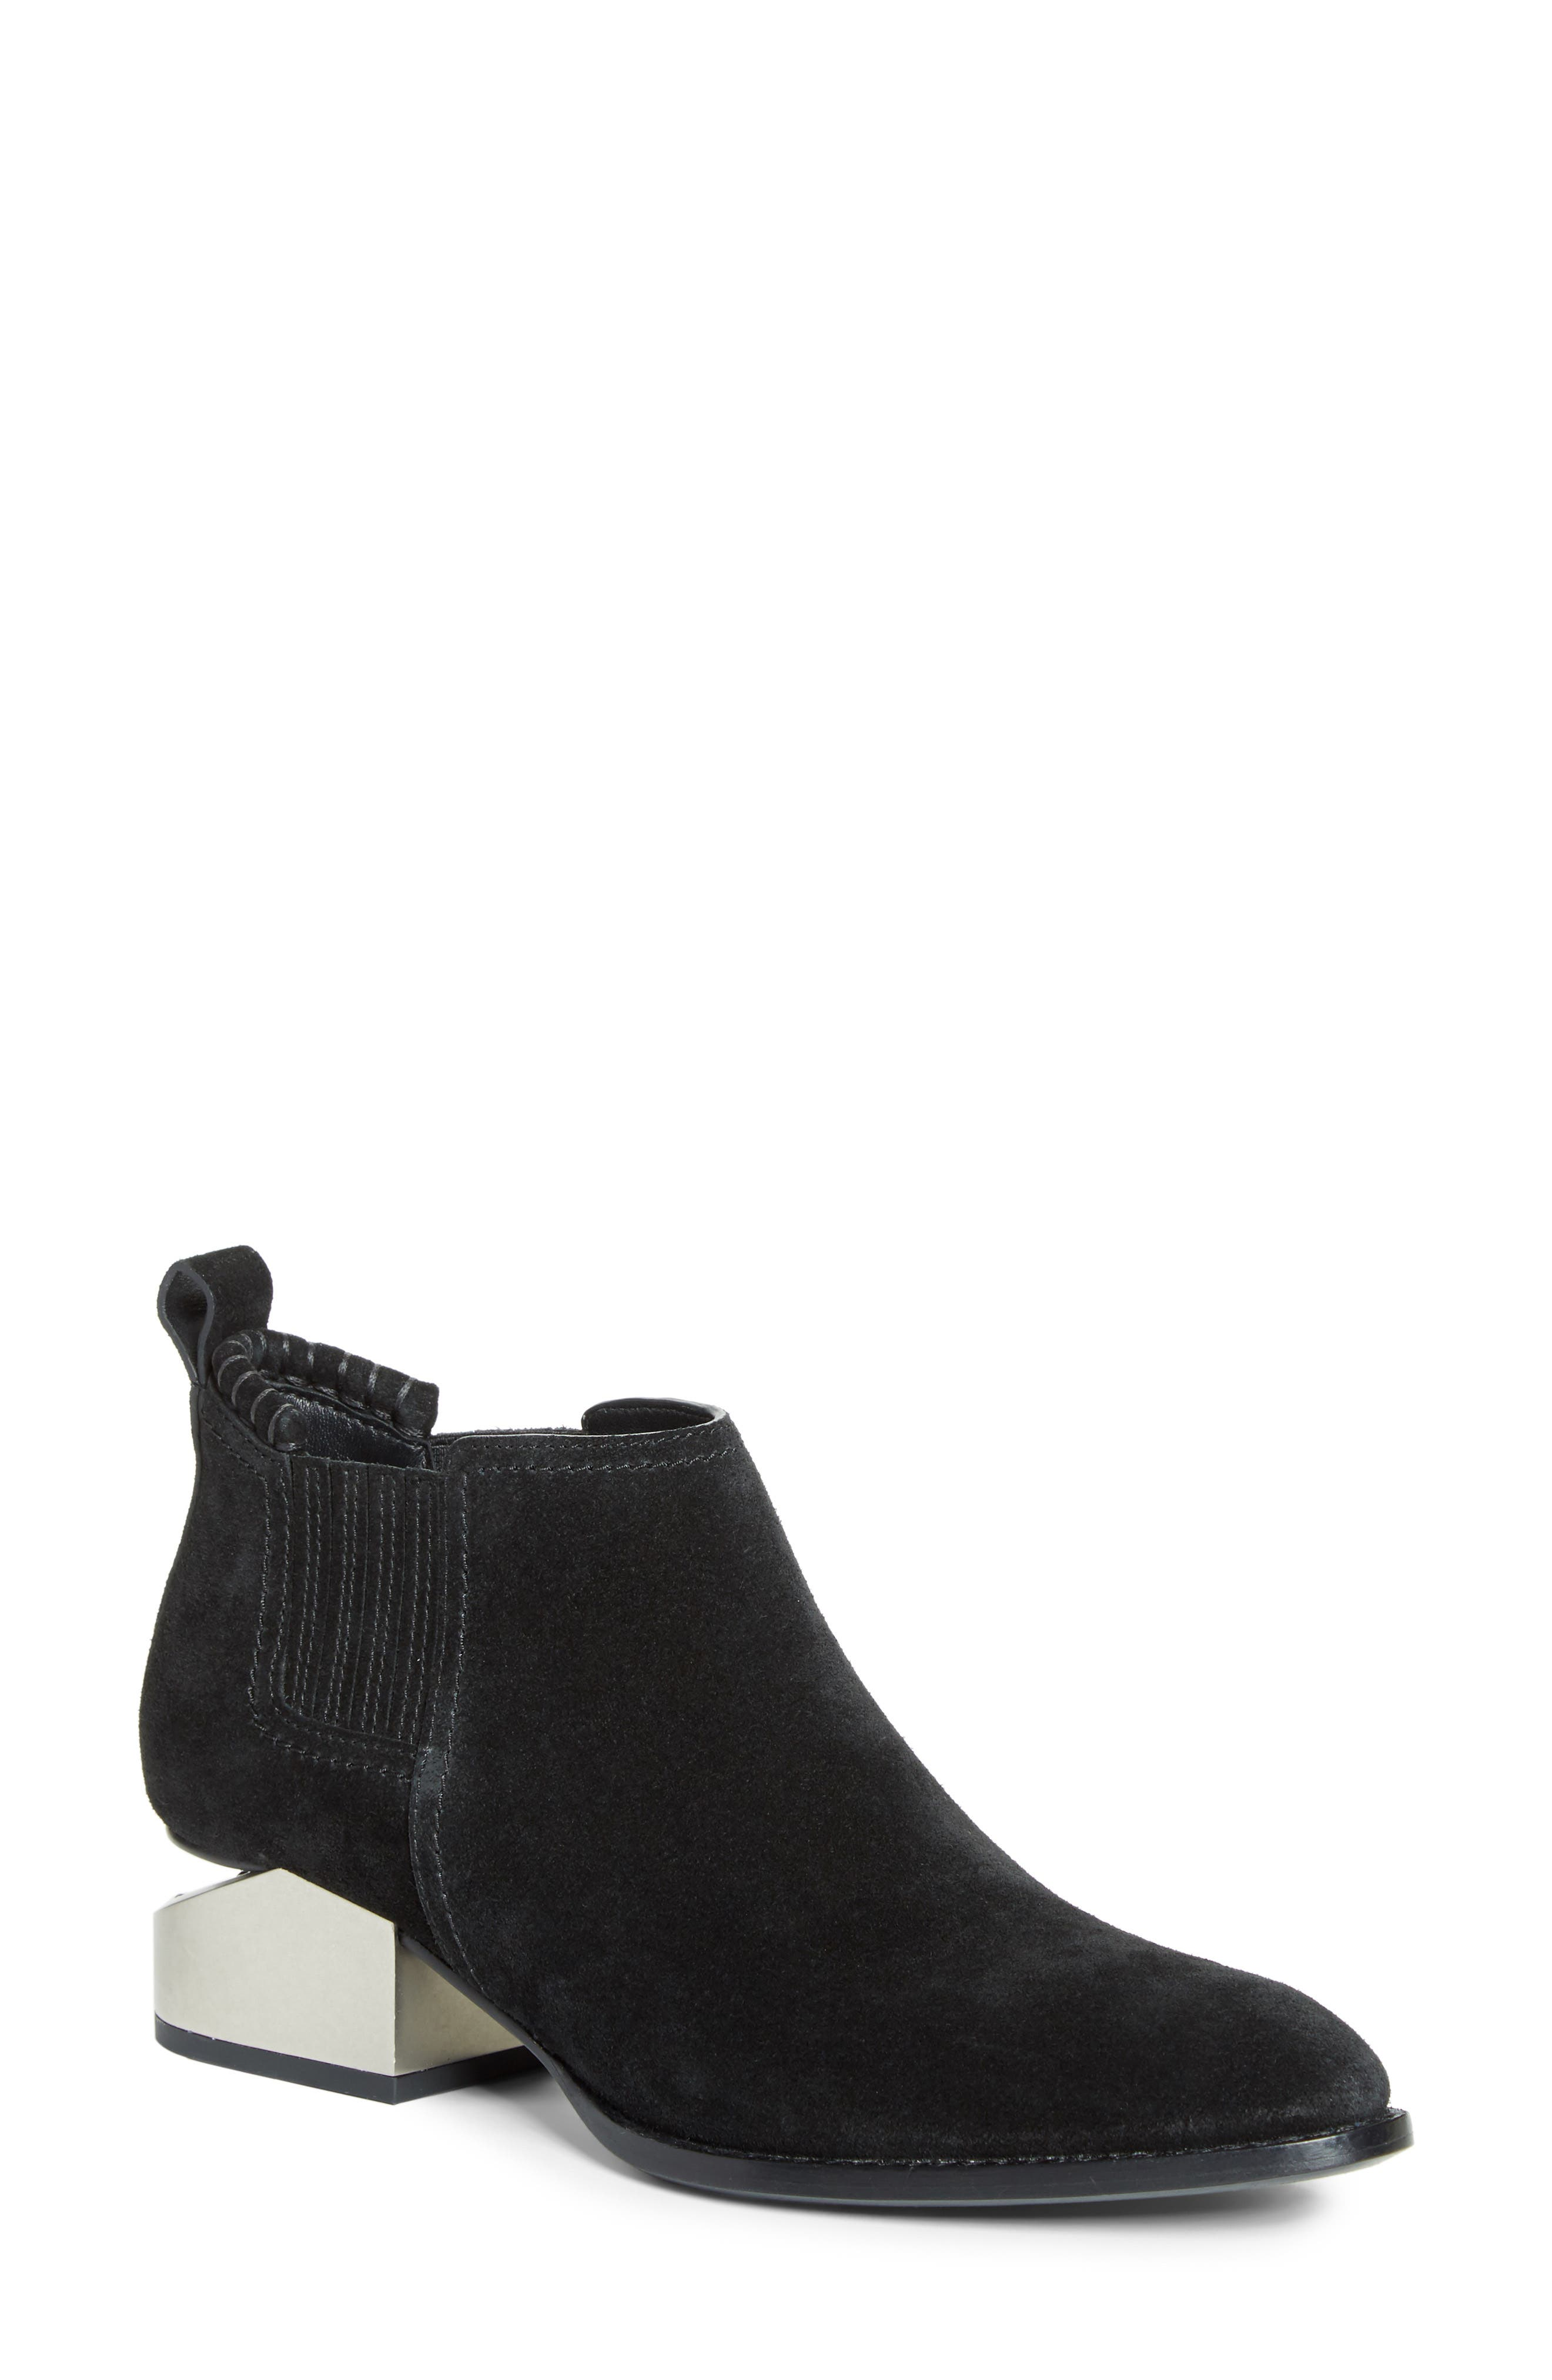 Kori Chelsea Boot,                             Main thumbnail 1, color,                             001